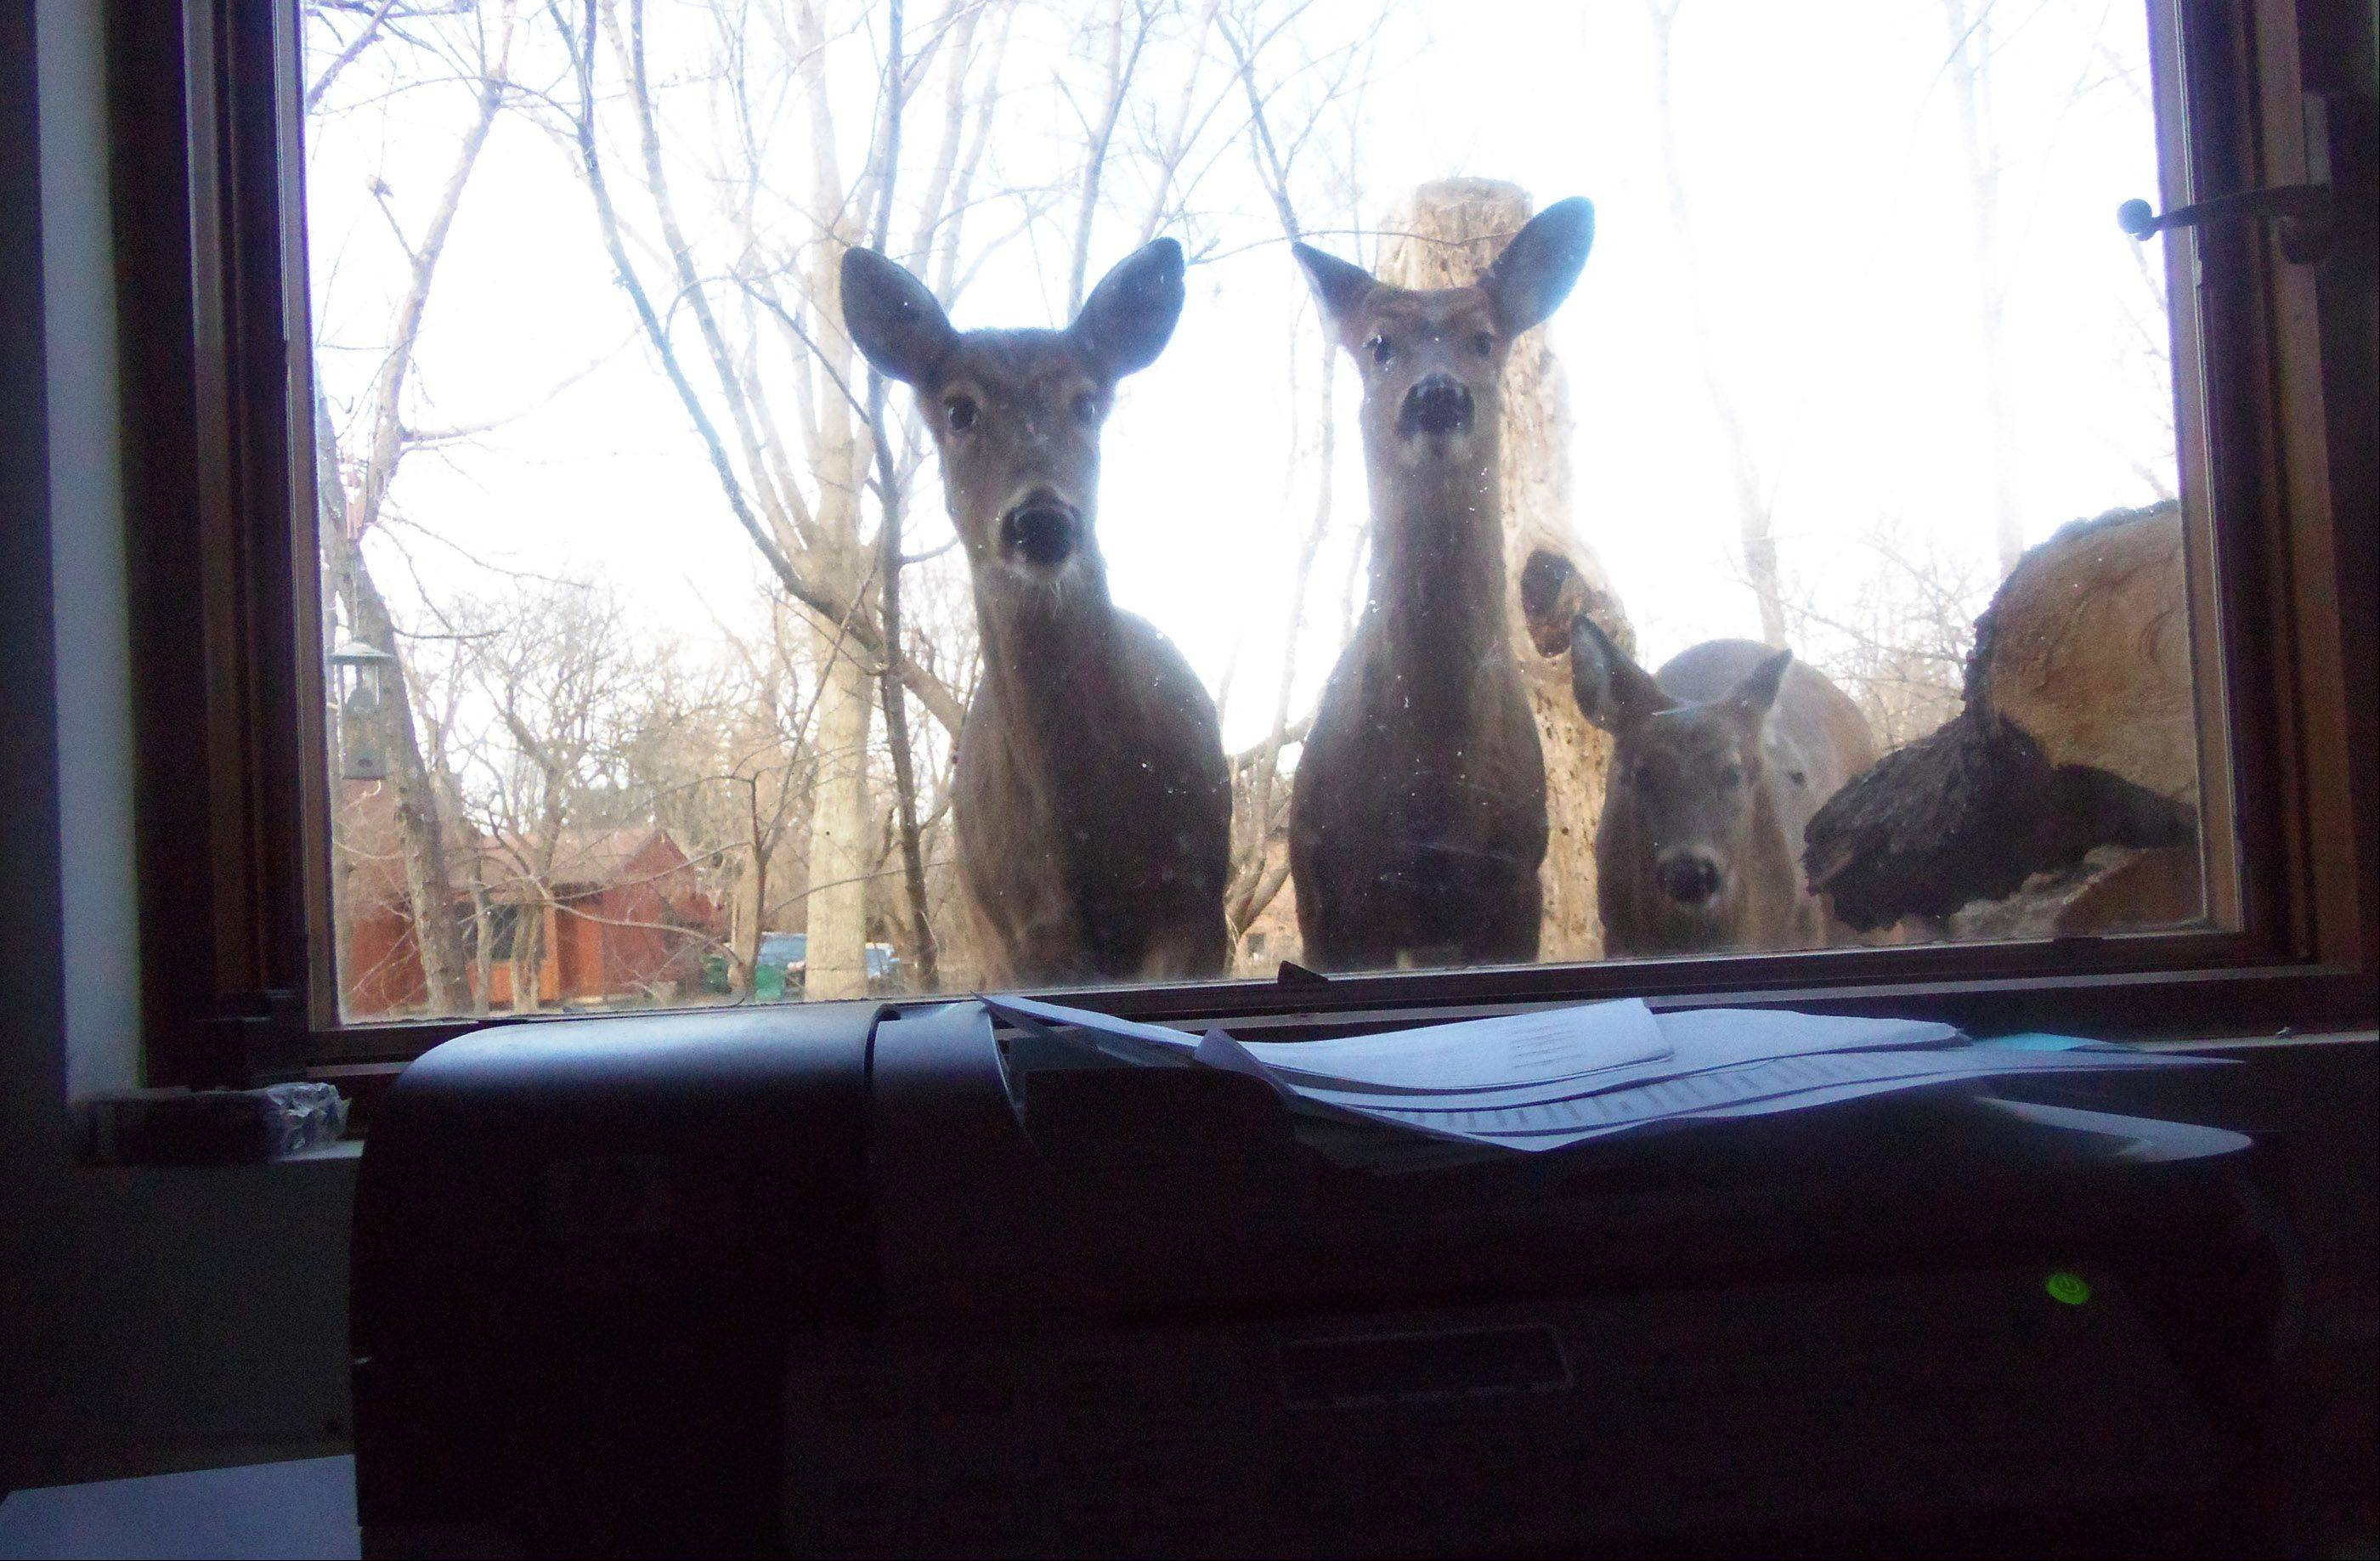 Last Sunday, four deer were in our yard. We were watching them from our family room window. I never thought that three of them would come right up to the window and look in.